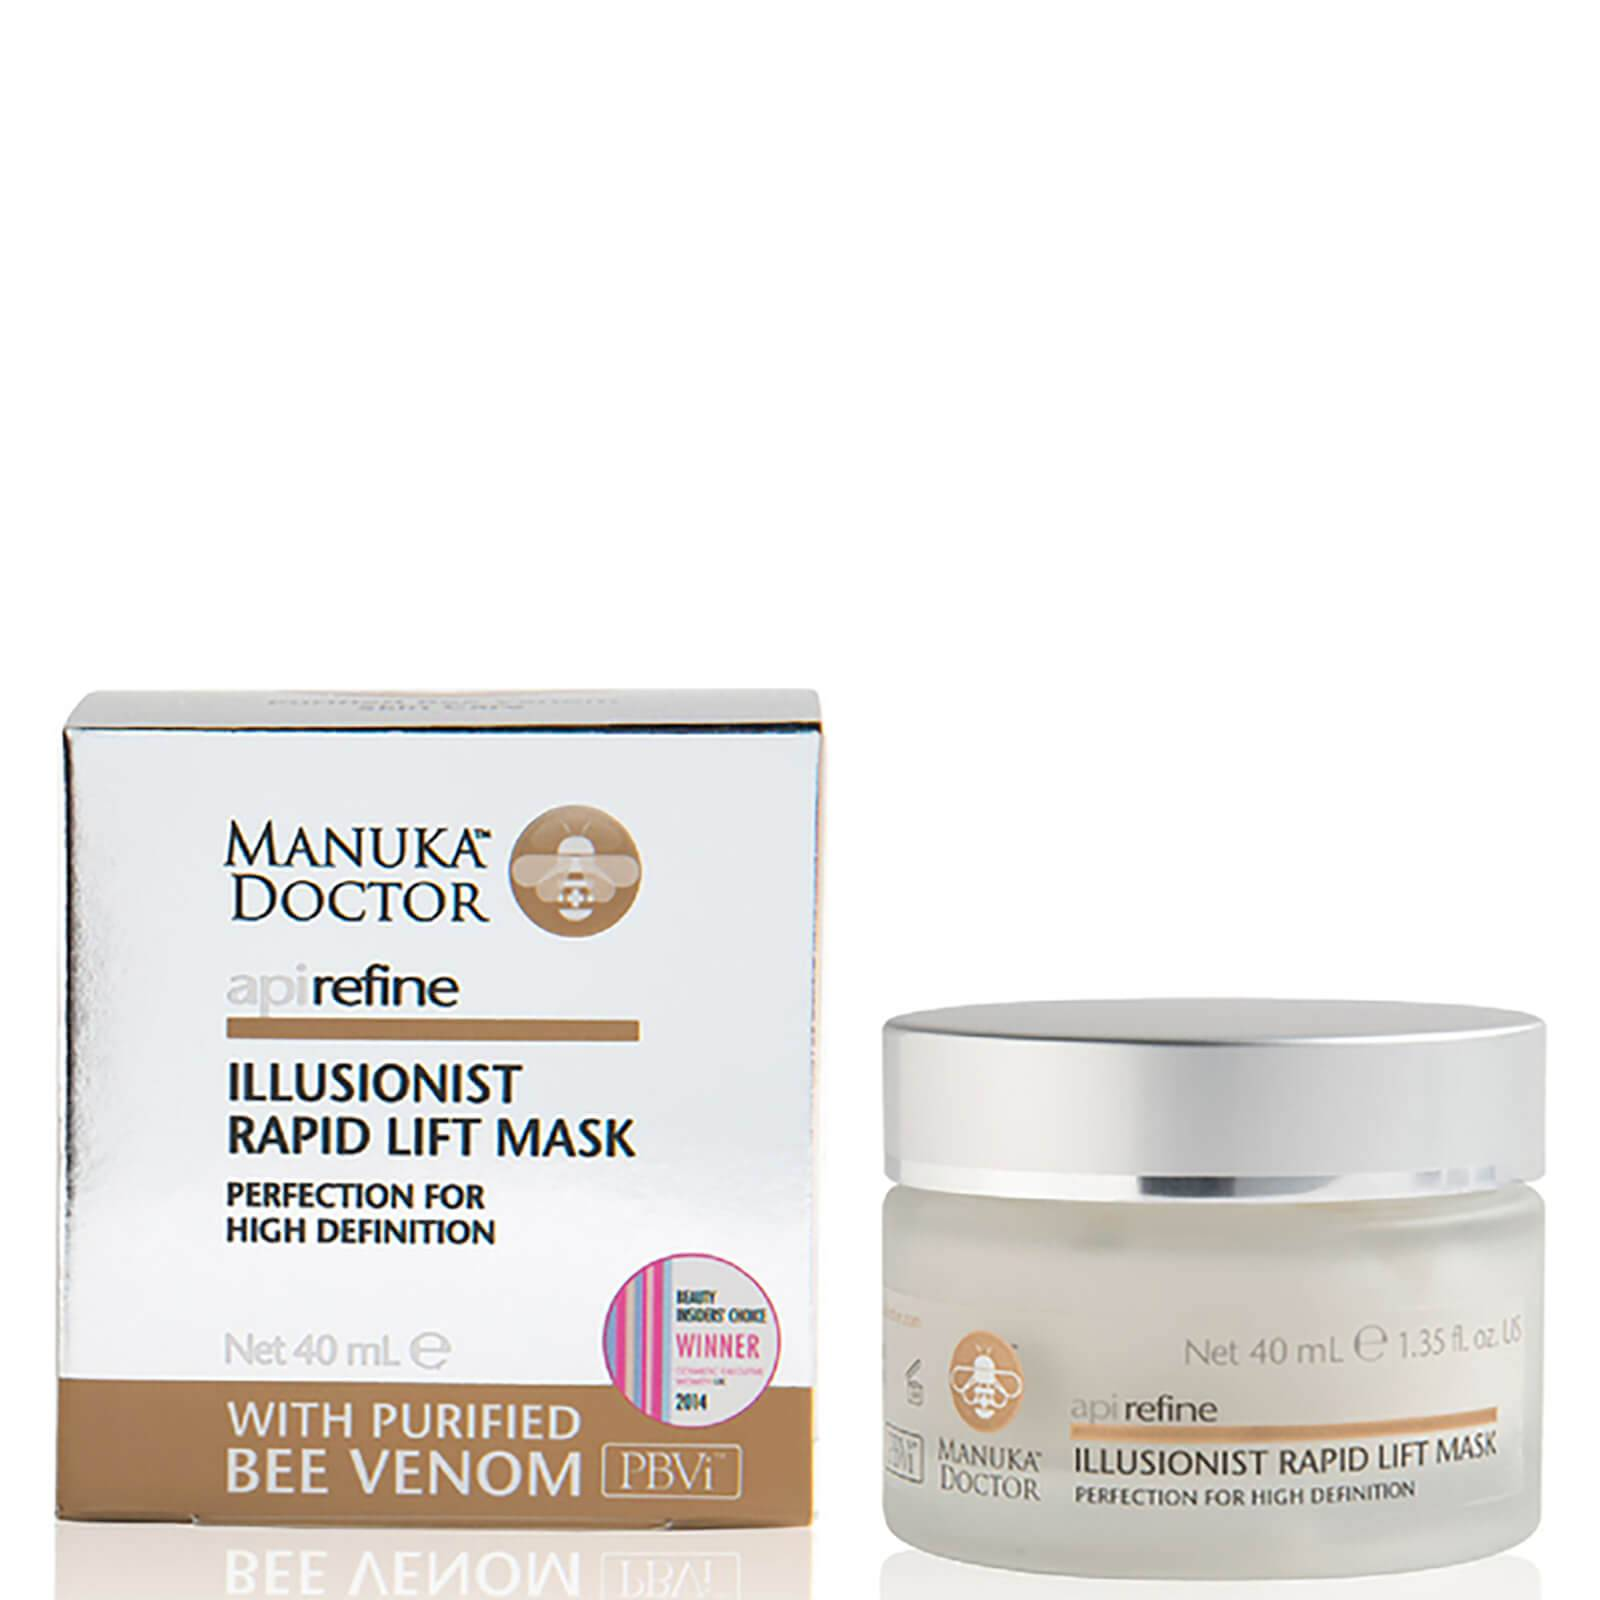 Manuka Doctor Masque illusioniste à effet tenseur rapide ApiRefine Manuka Doctor  40 ml